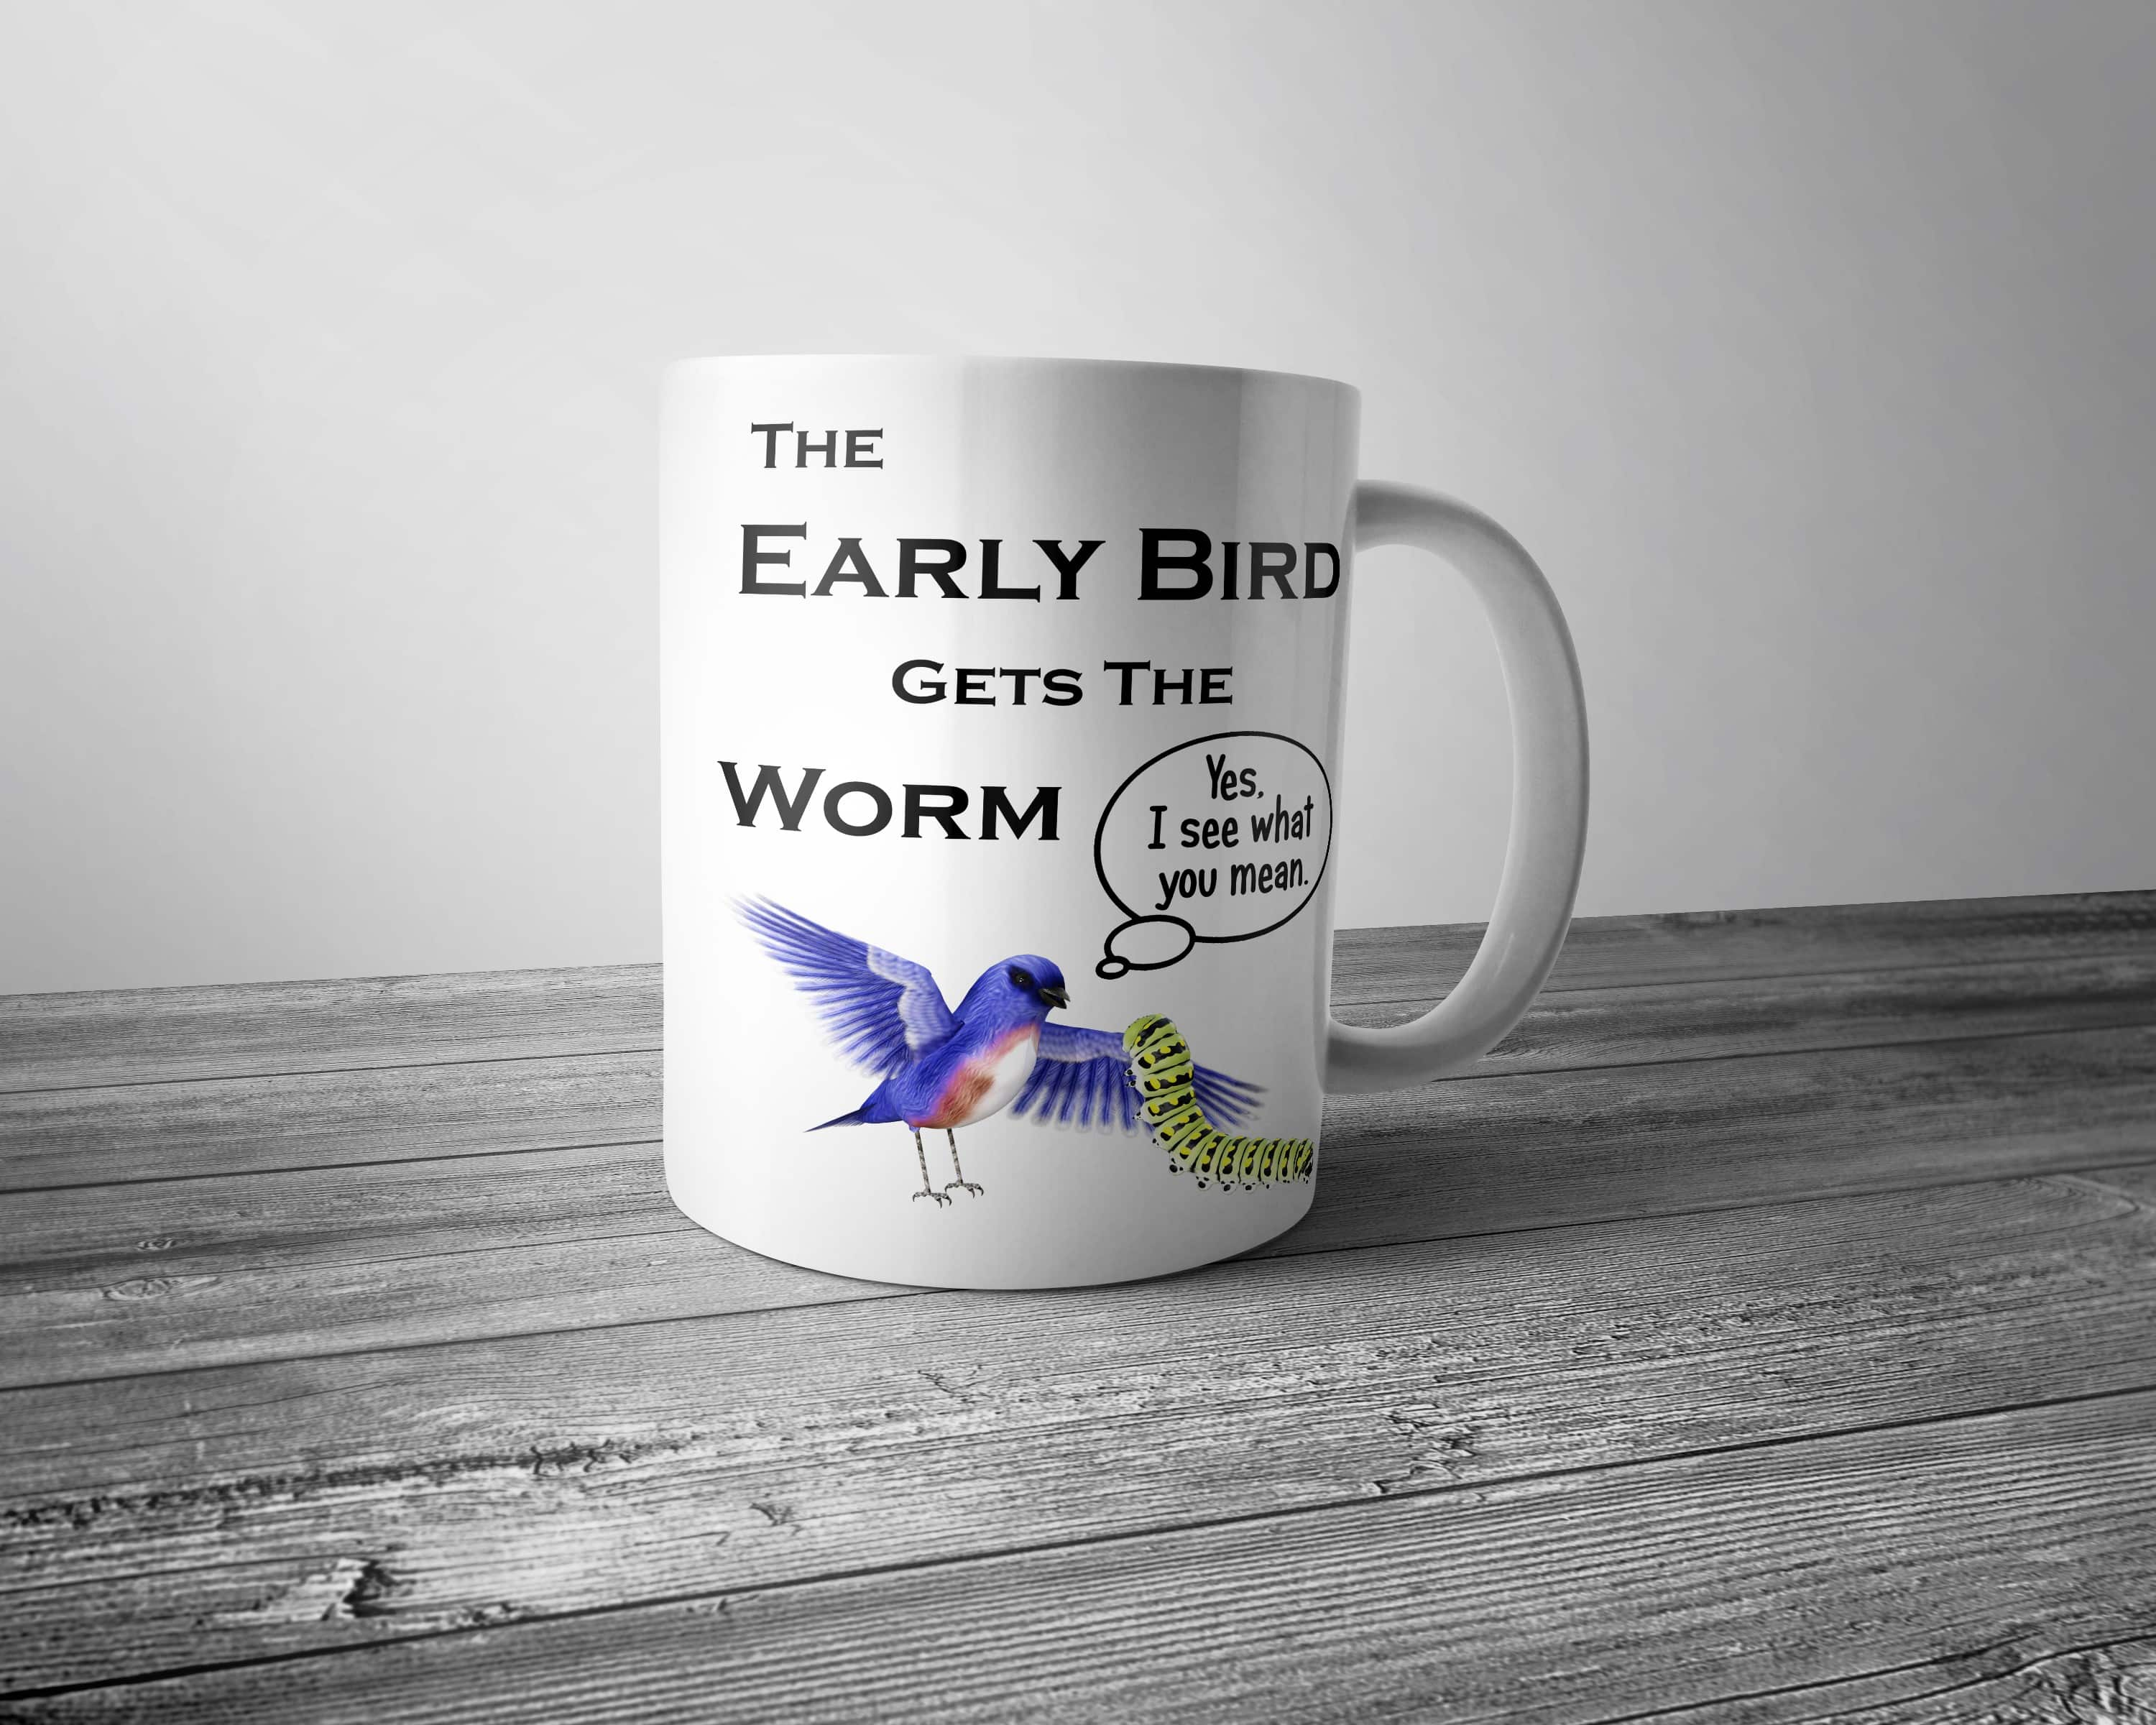 what does early bird gets the worm mean